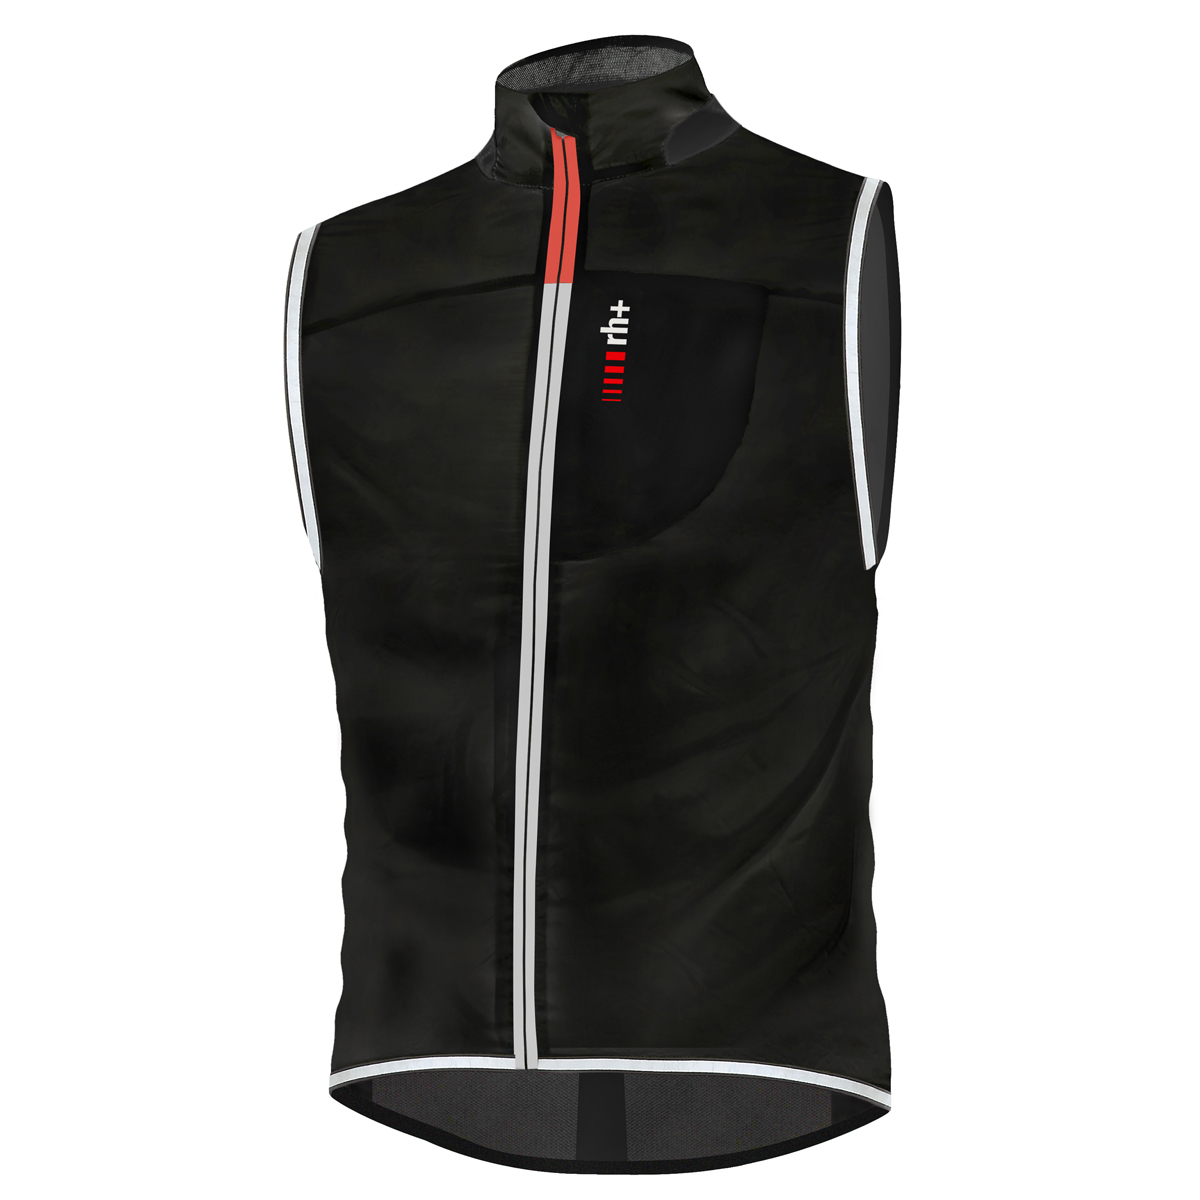 RH+ Acquaria Pocket Vest black SSCU024-900